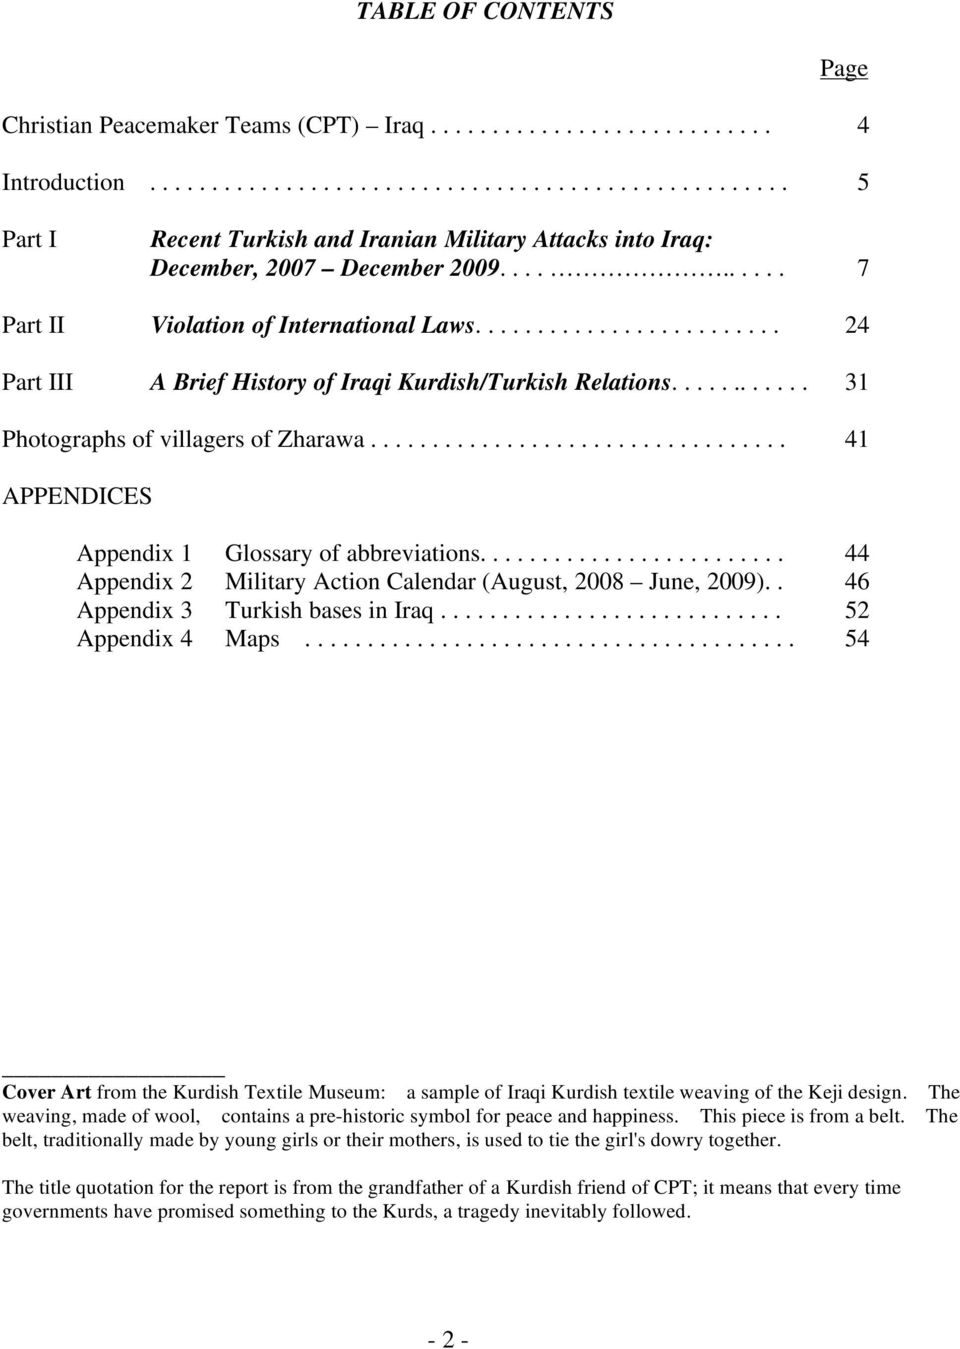 ................................. 41 APPENDICES Appendix 1 Glossary of abbreviations......................... 44 Appendix 2 Military Action Calendar (August, 2008 June, 2009).